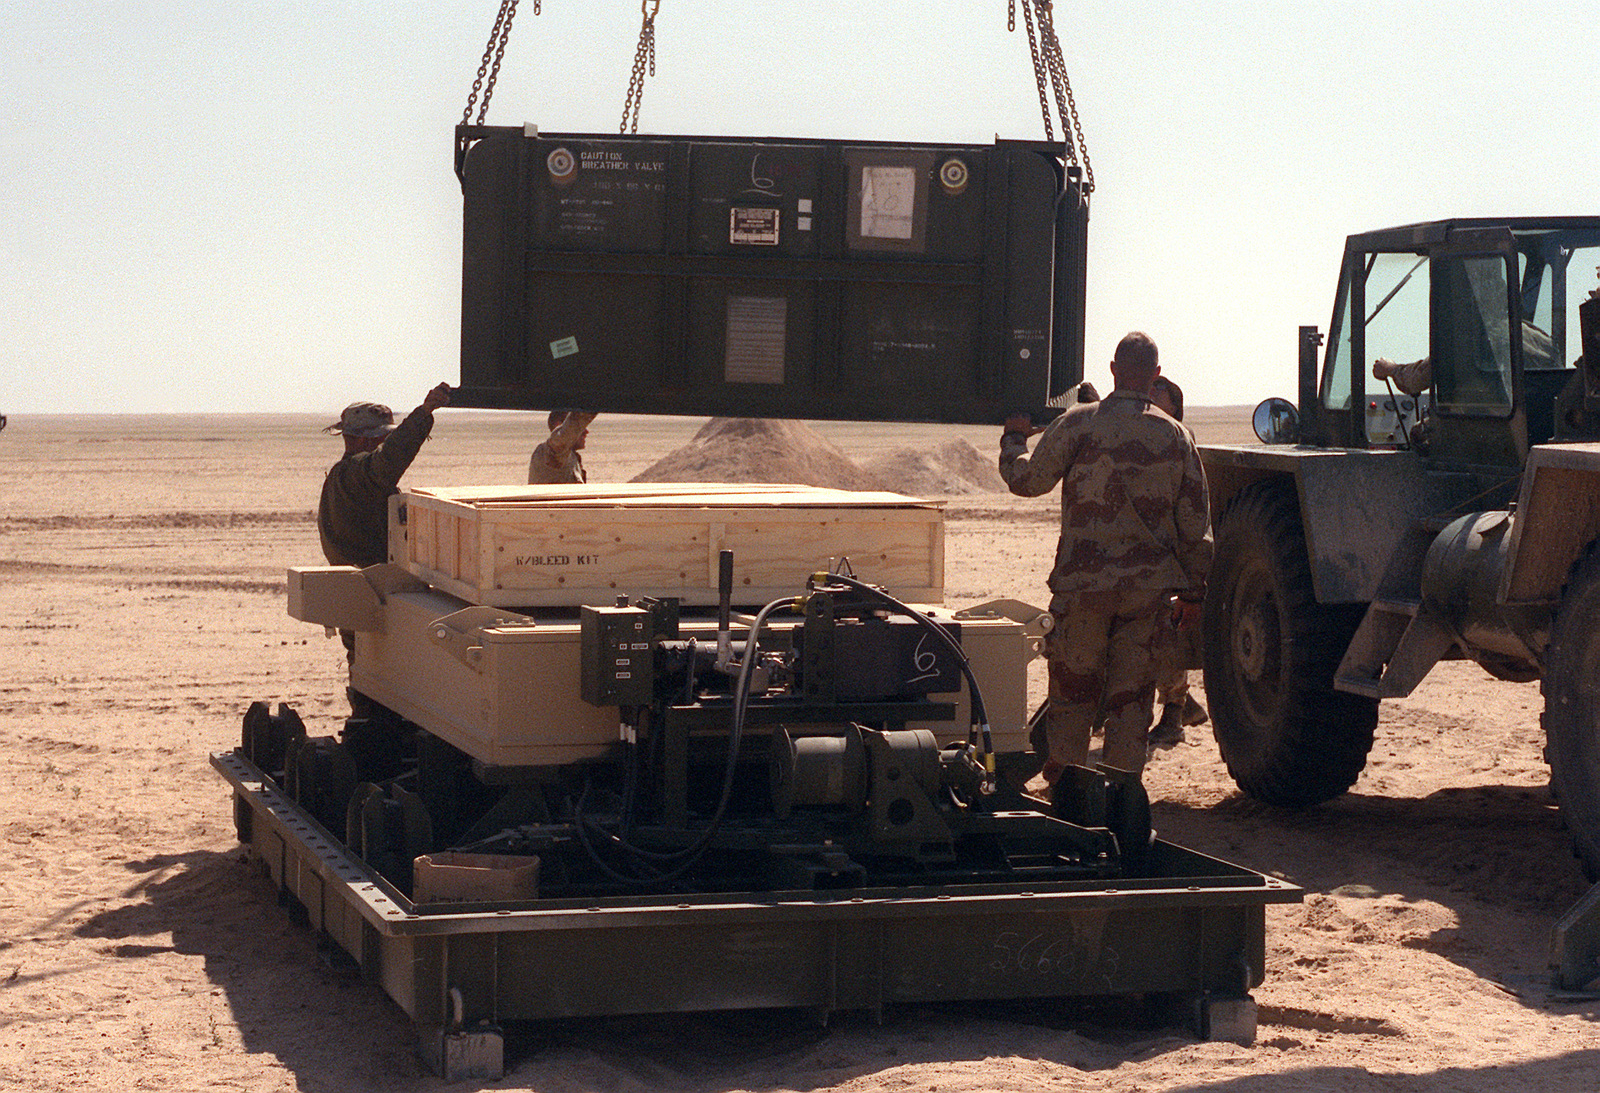 Mine clearance installations